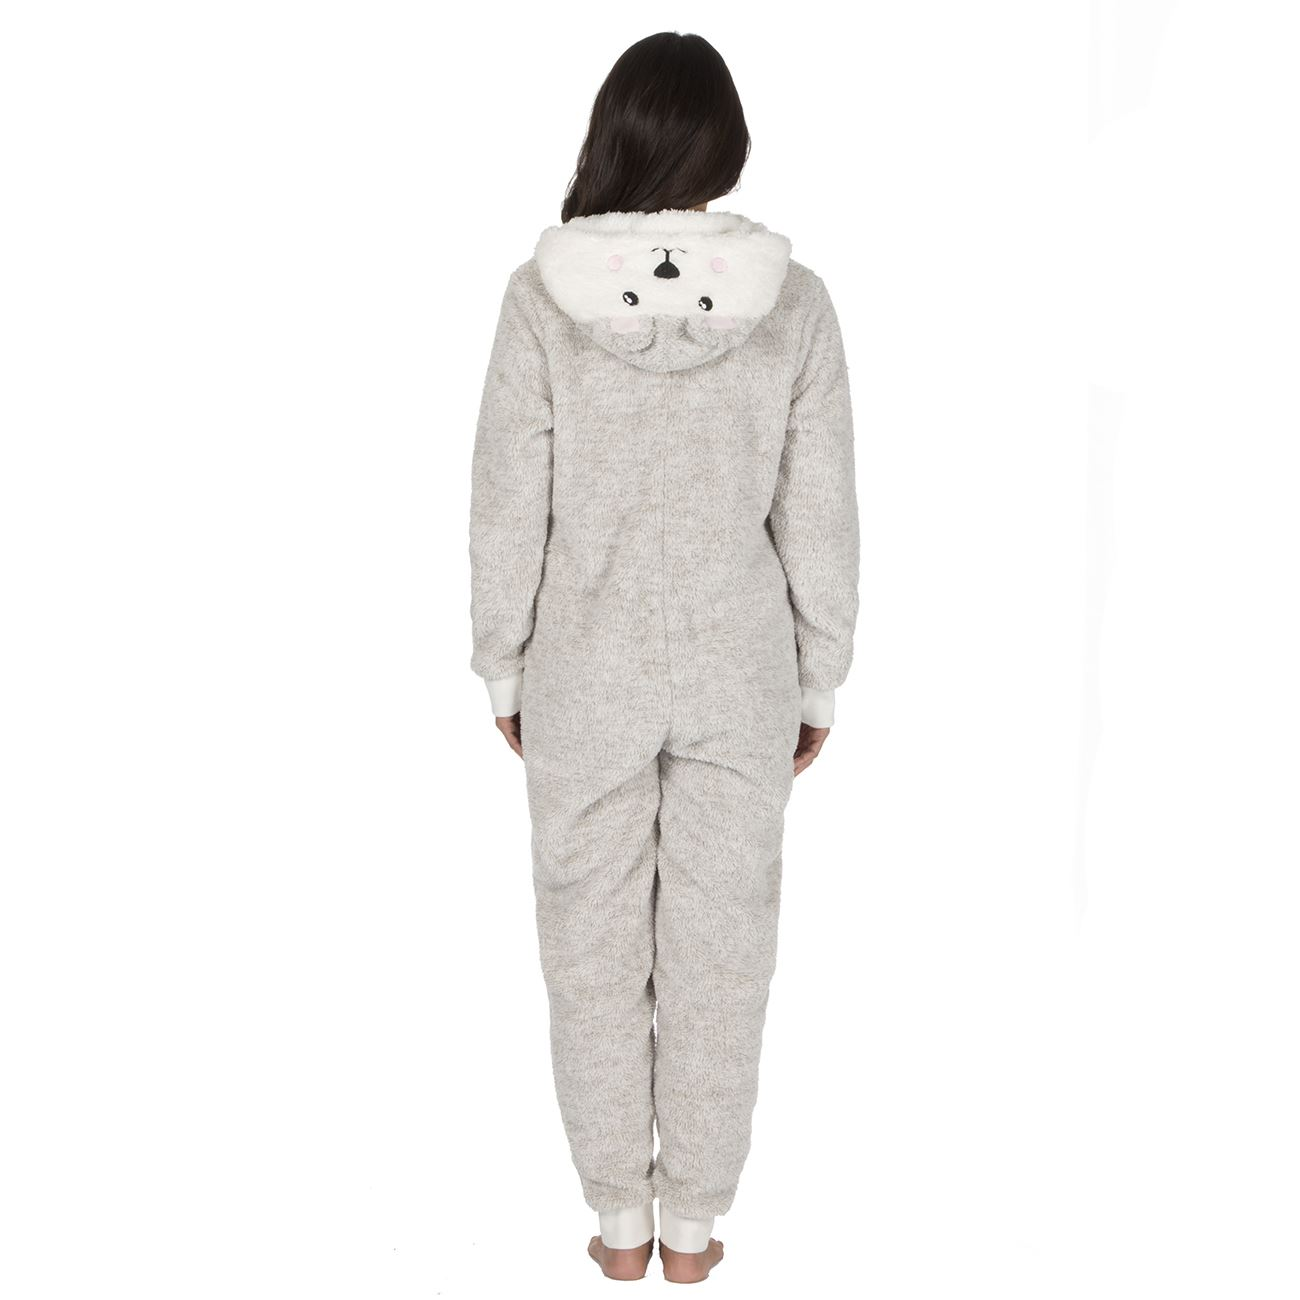 Ladies-Womens-Girls-Fleece-All-In-One-Pyjamas-Outfit-Jumpsuit-Costume-Size-6-18 thumbnail 38